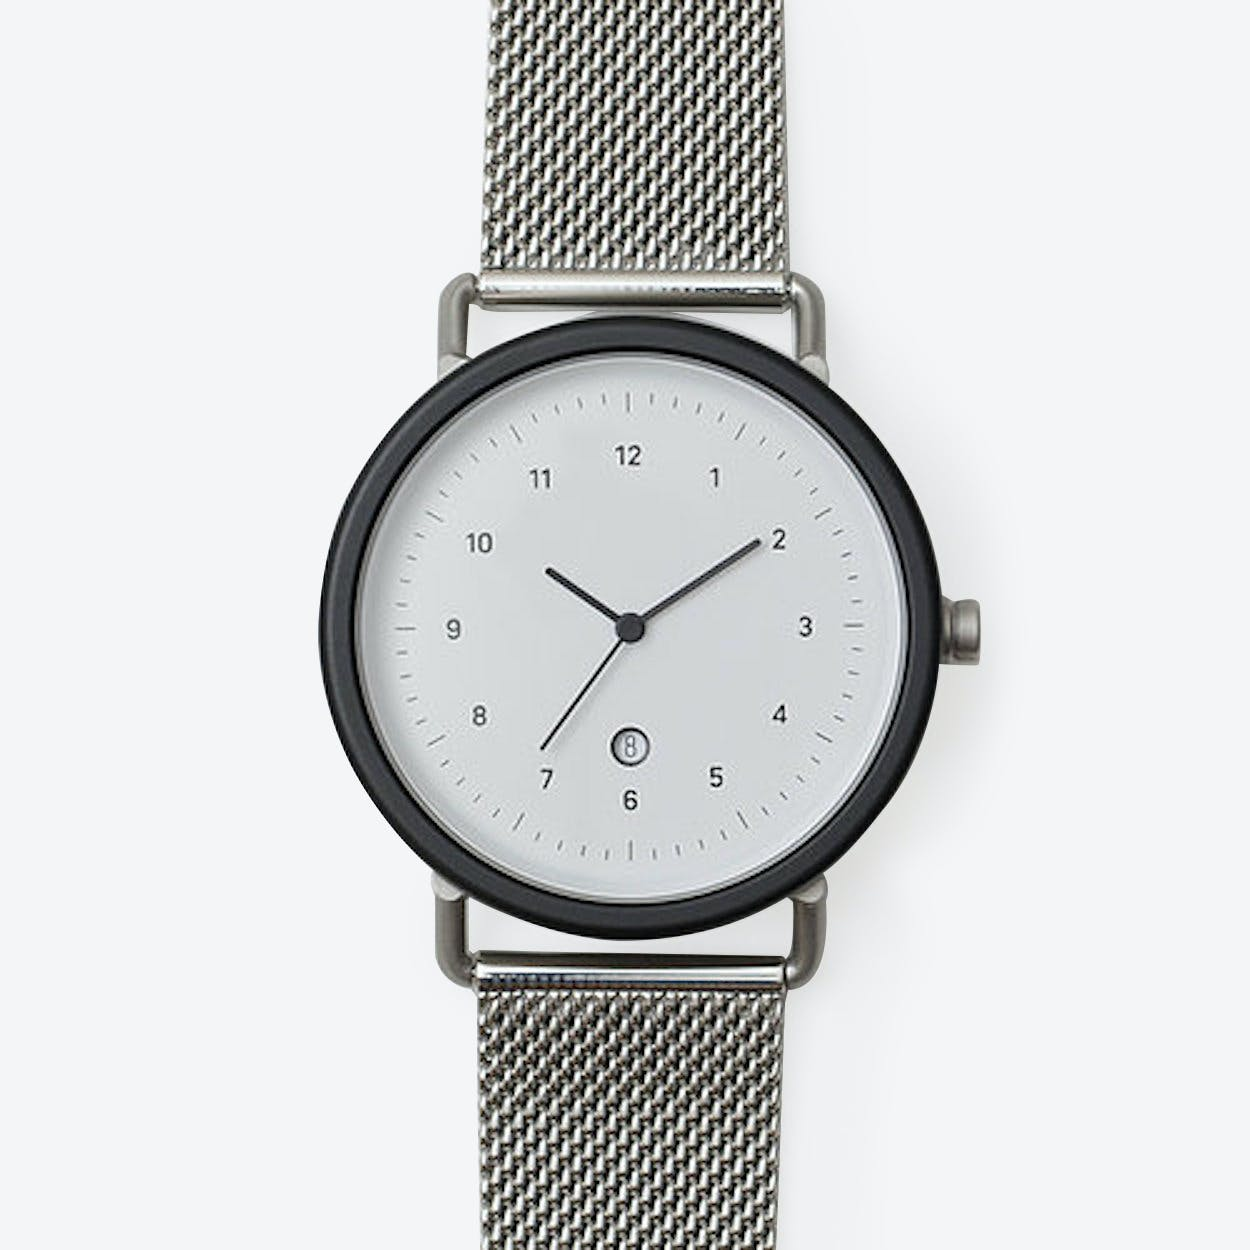 SS01 Watch (BLK/ SIL CASE/ SIL M.STRAP)